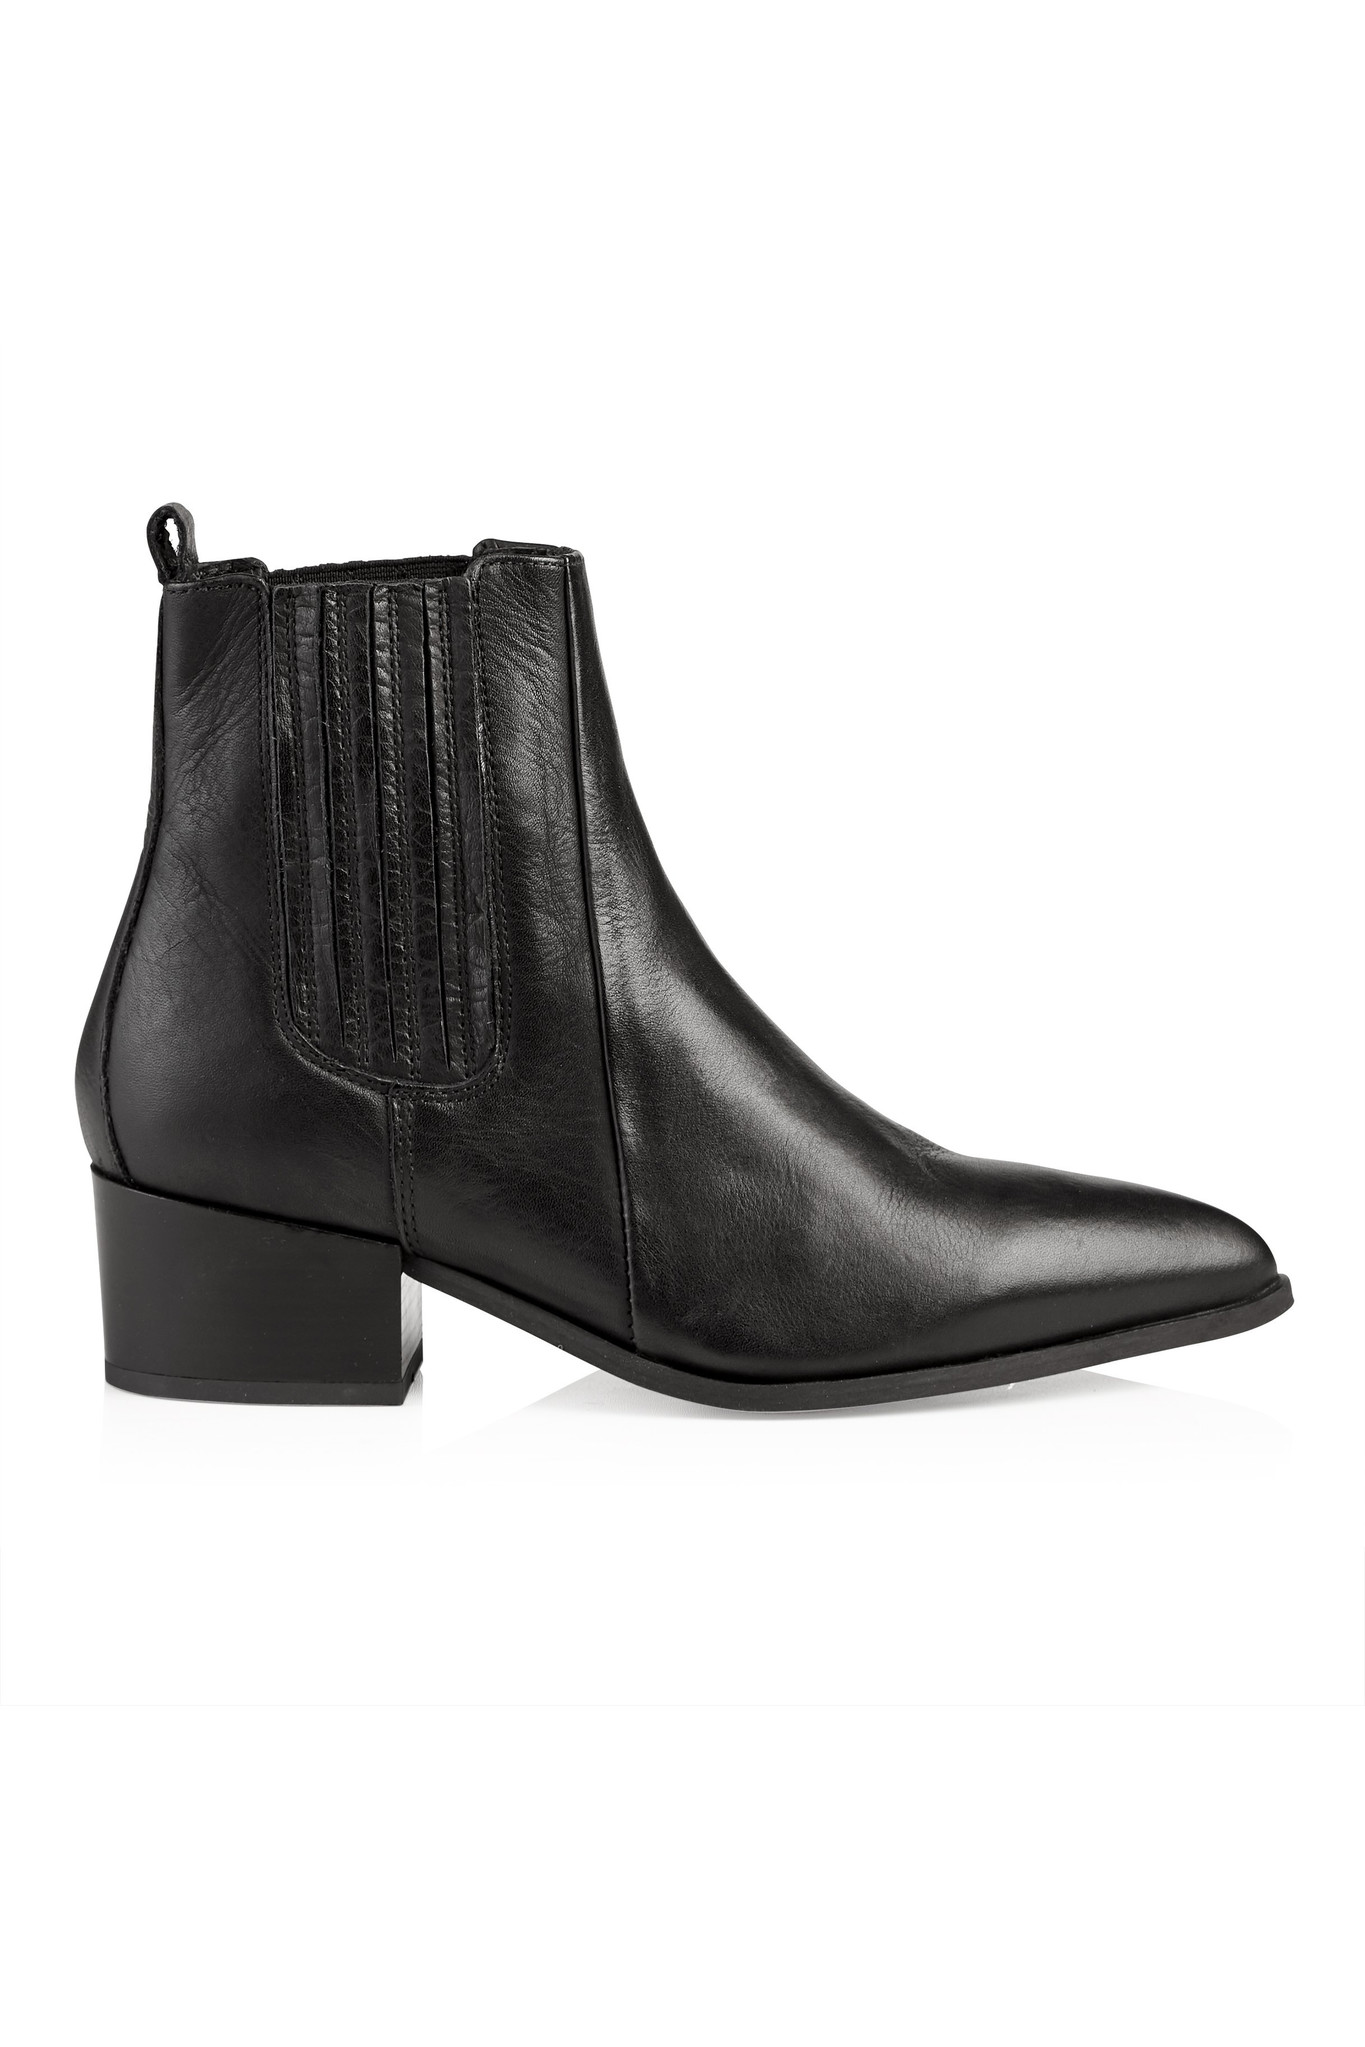 Sage Leather Boot - Black-1